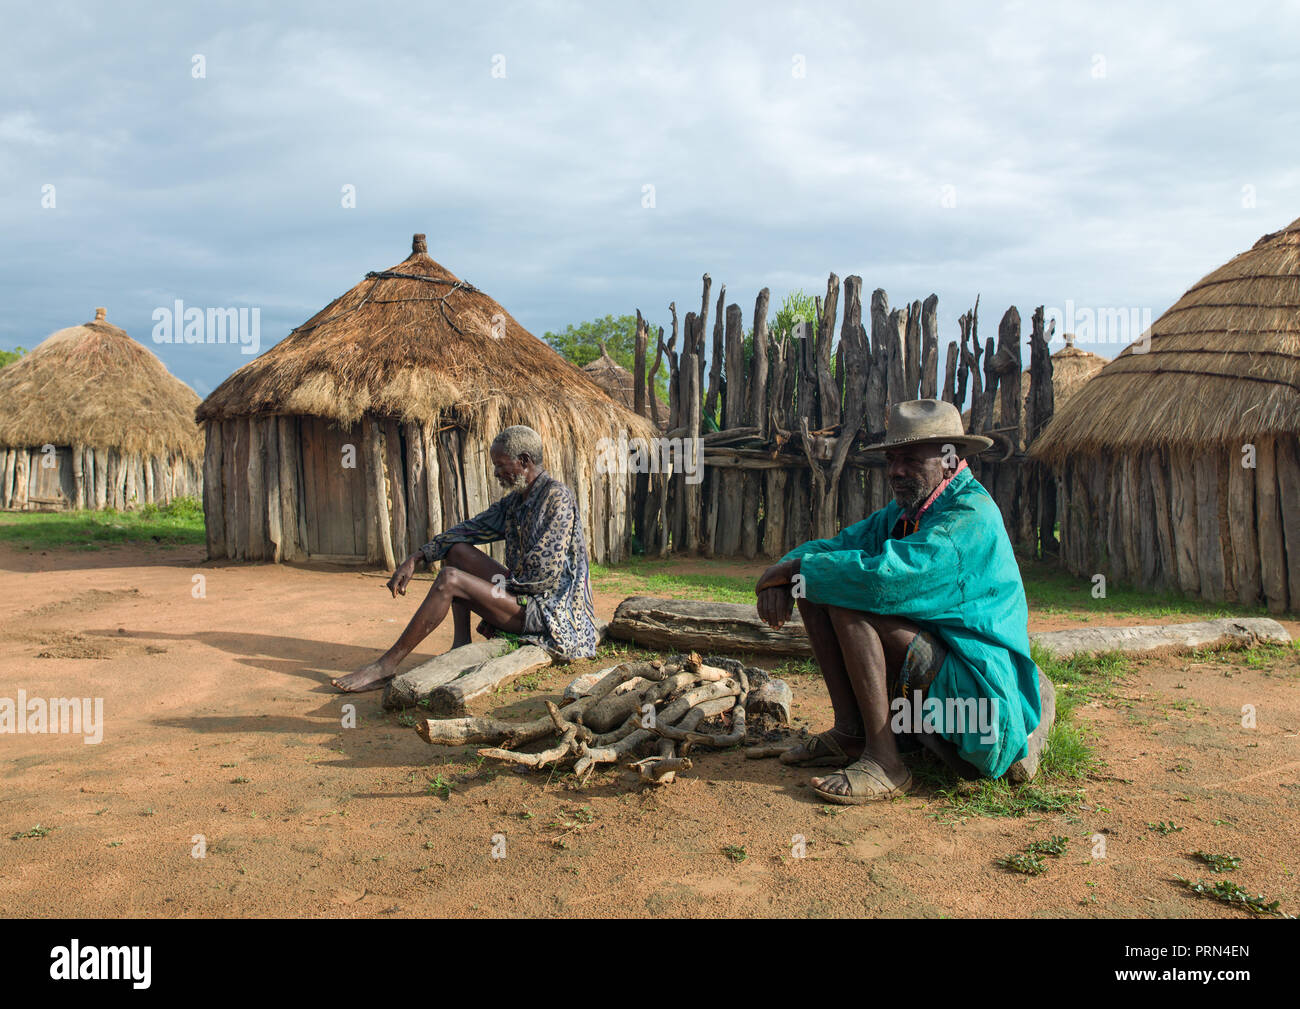 Old mwila men dressed in a western way in a village, Huila Province, Chibia, Angola Stock Photo